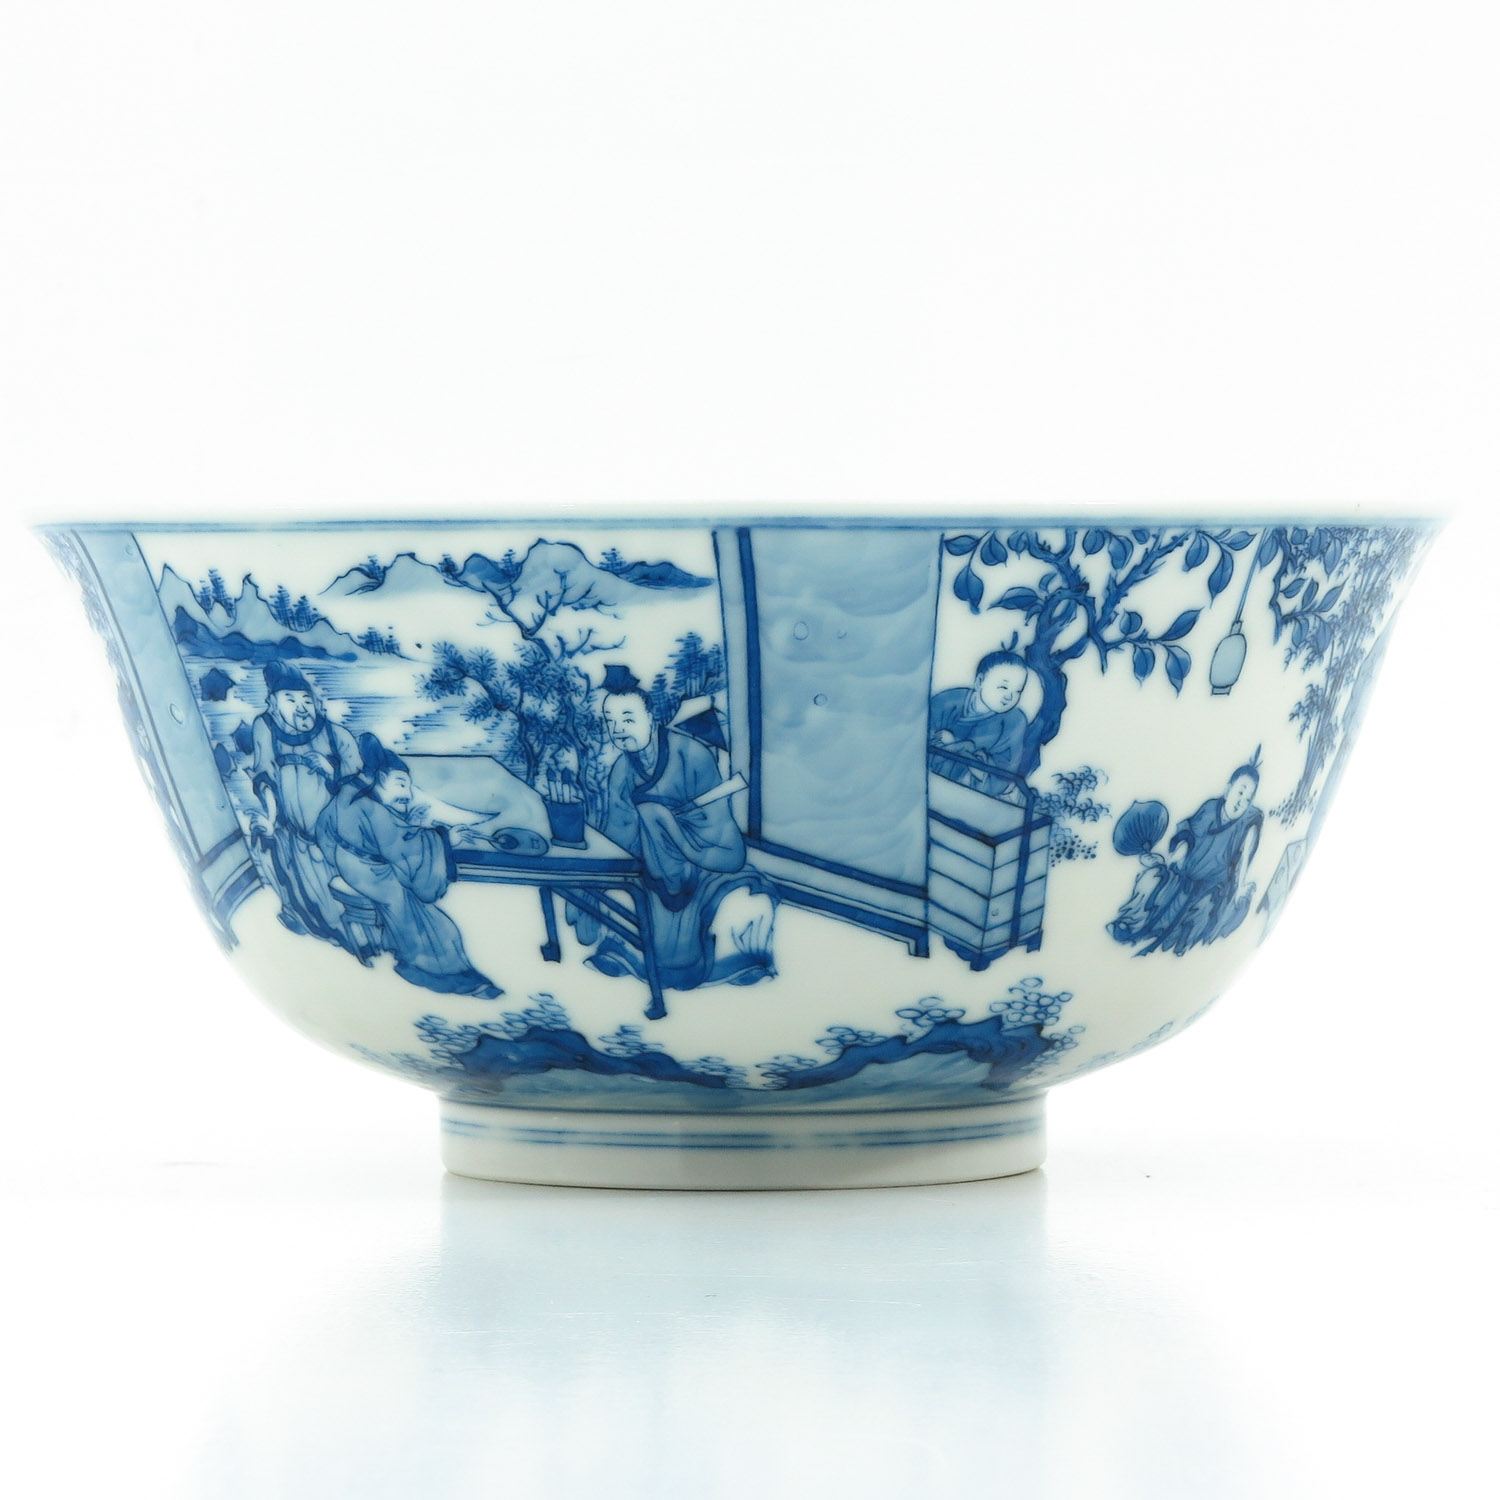 A Blue and White Bowl - Image 4 of 10